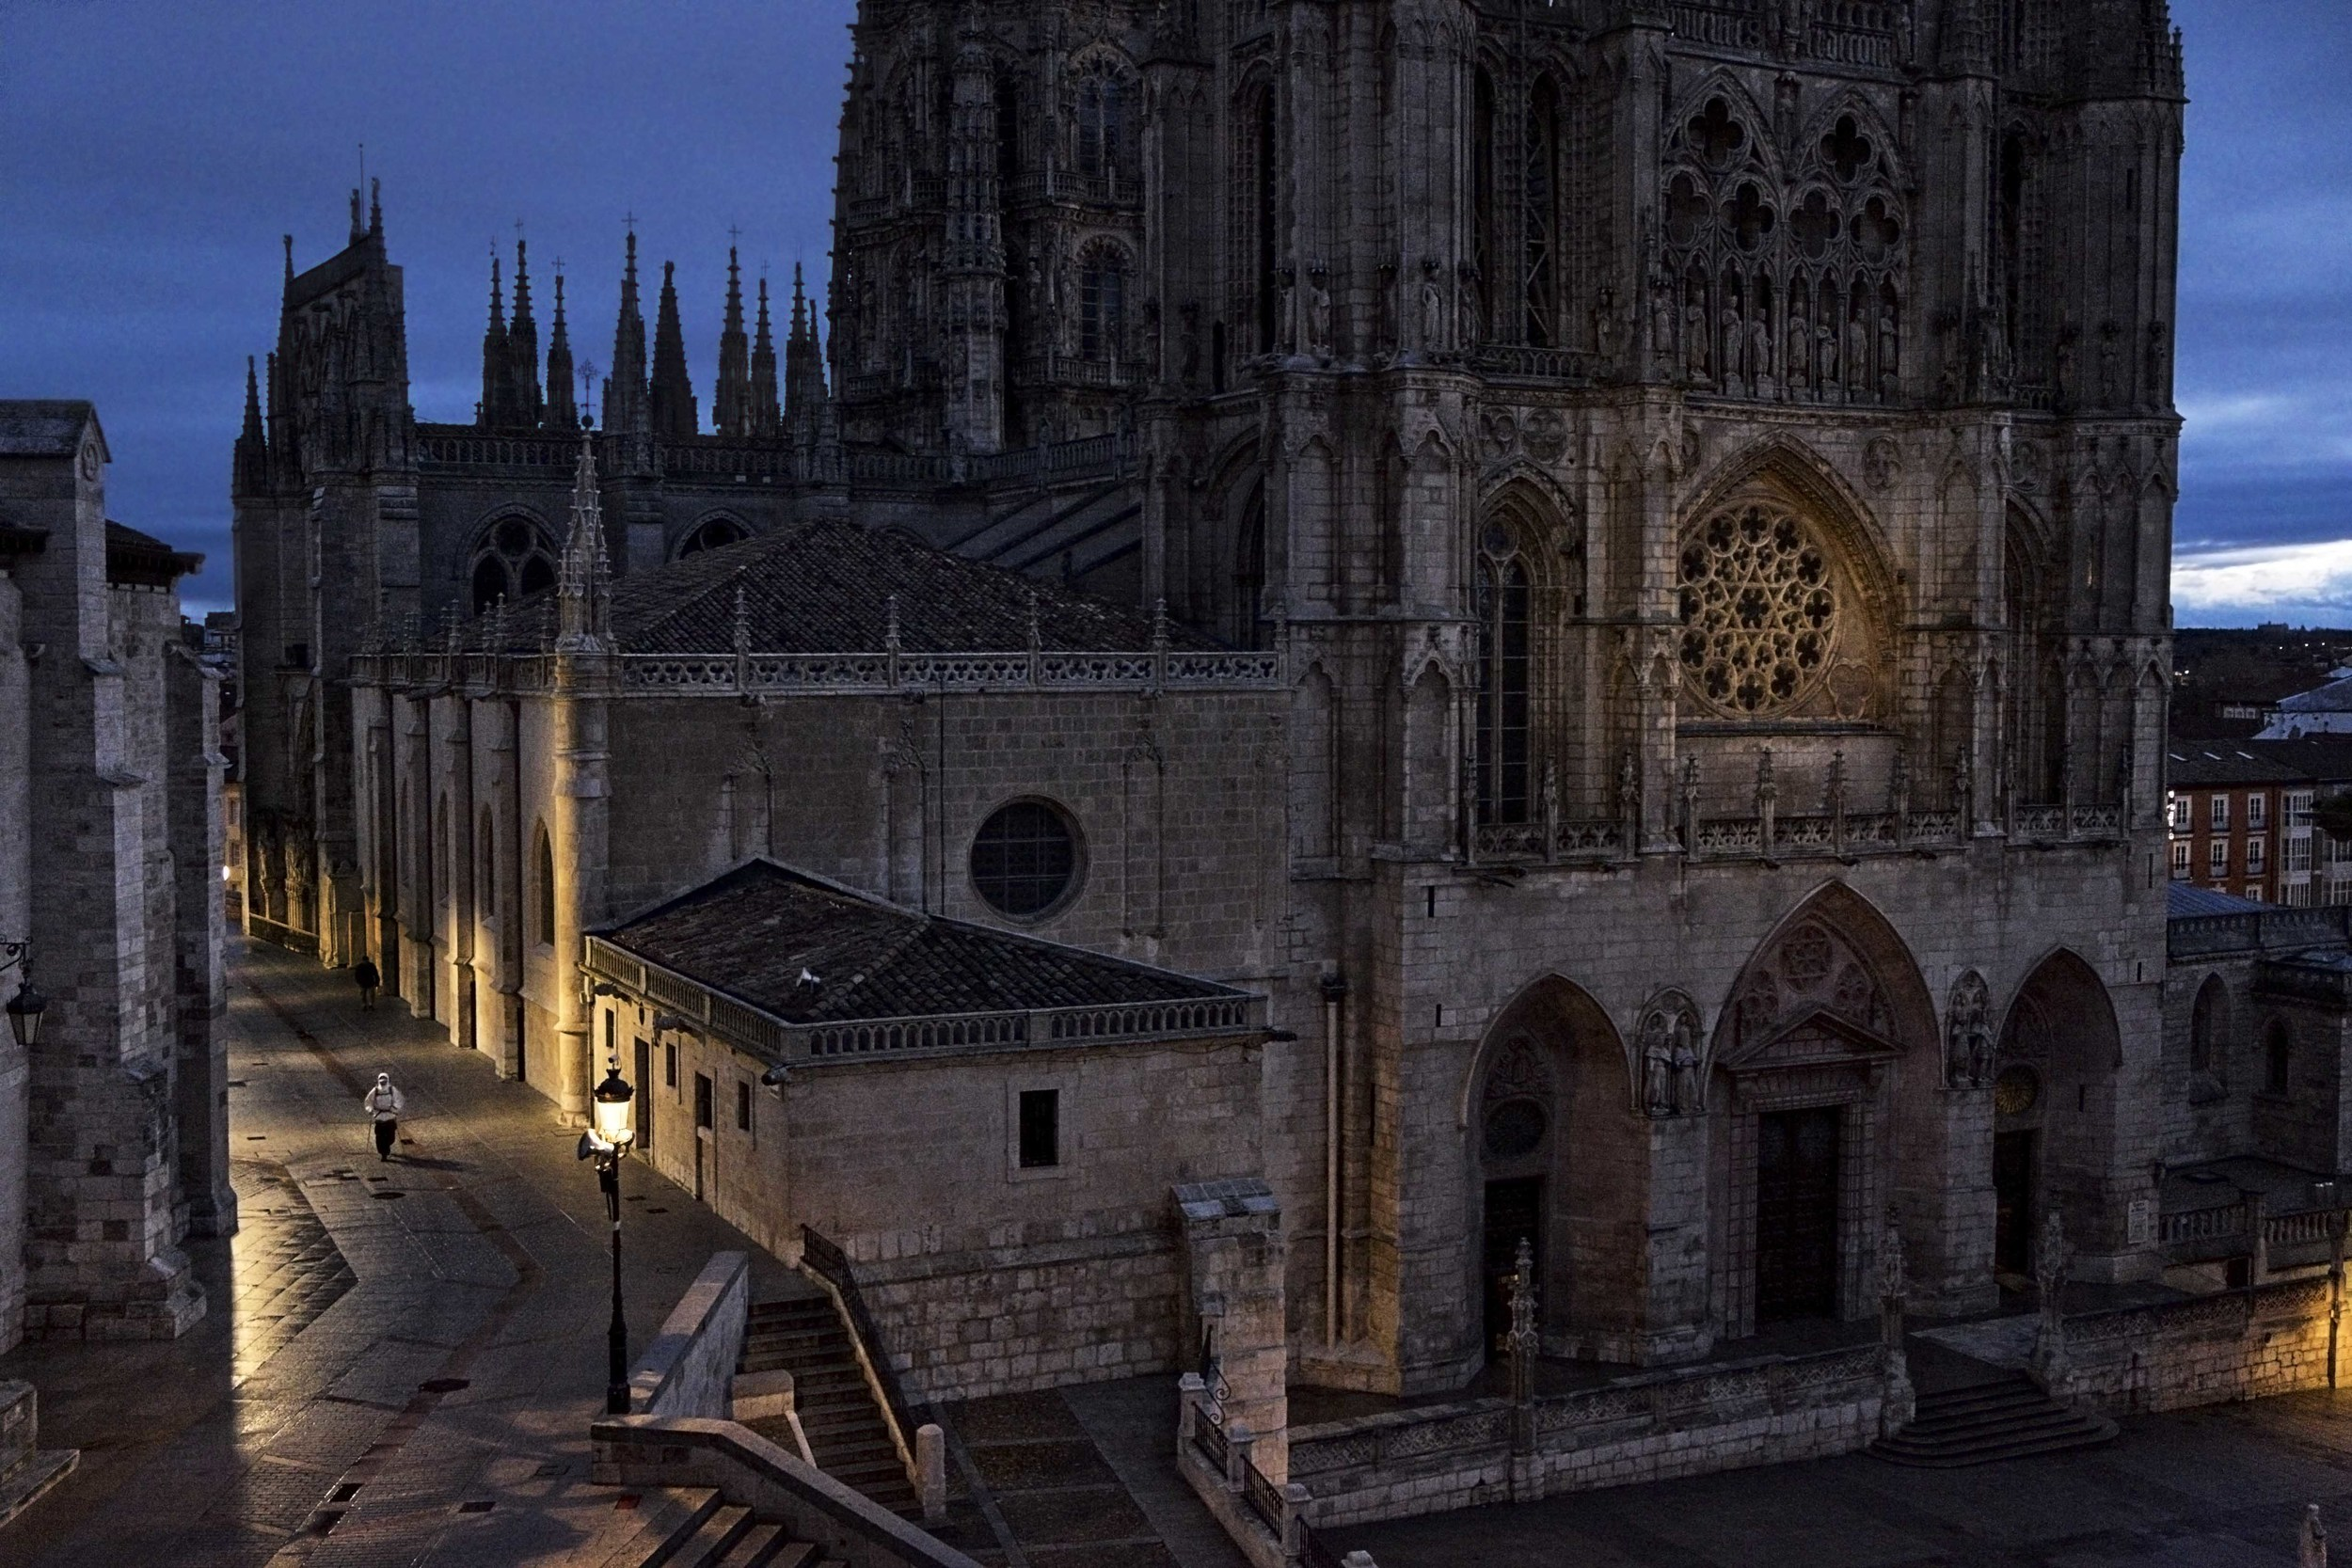 Solitary figure of a pilgrim leaving the city of Burgos early morning beside the 13th century Burgos Cathedral.